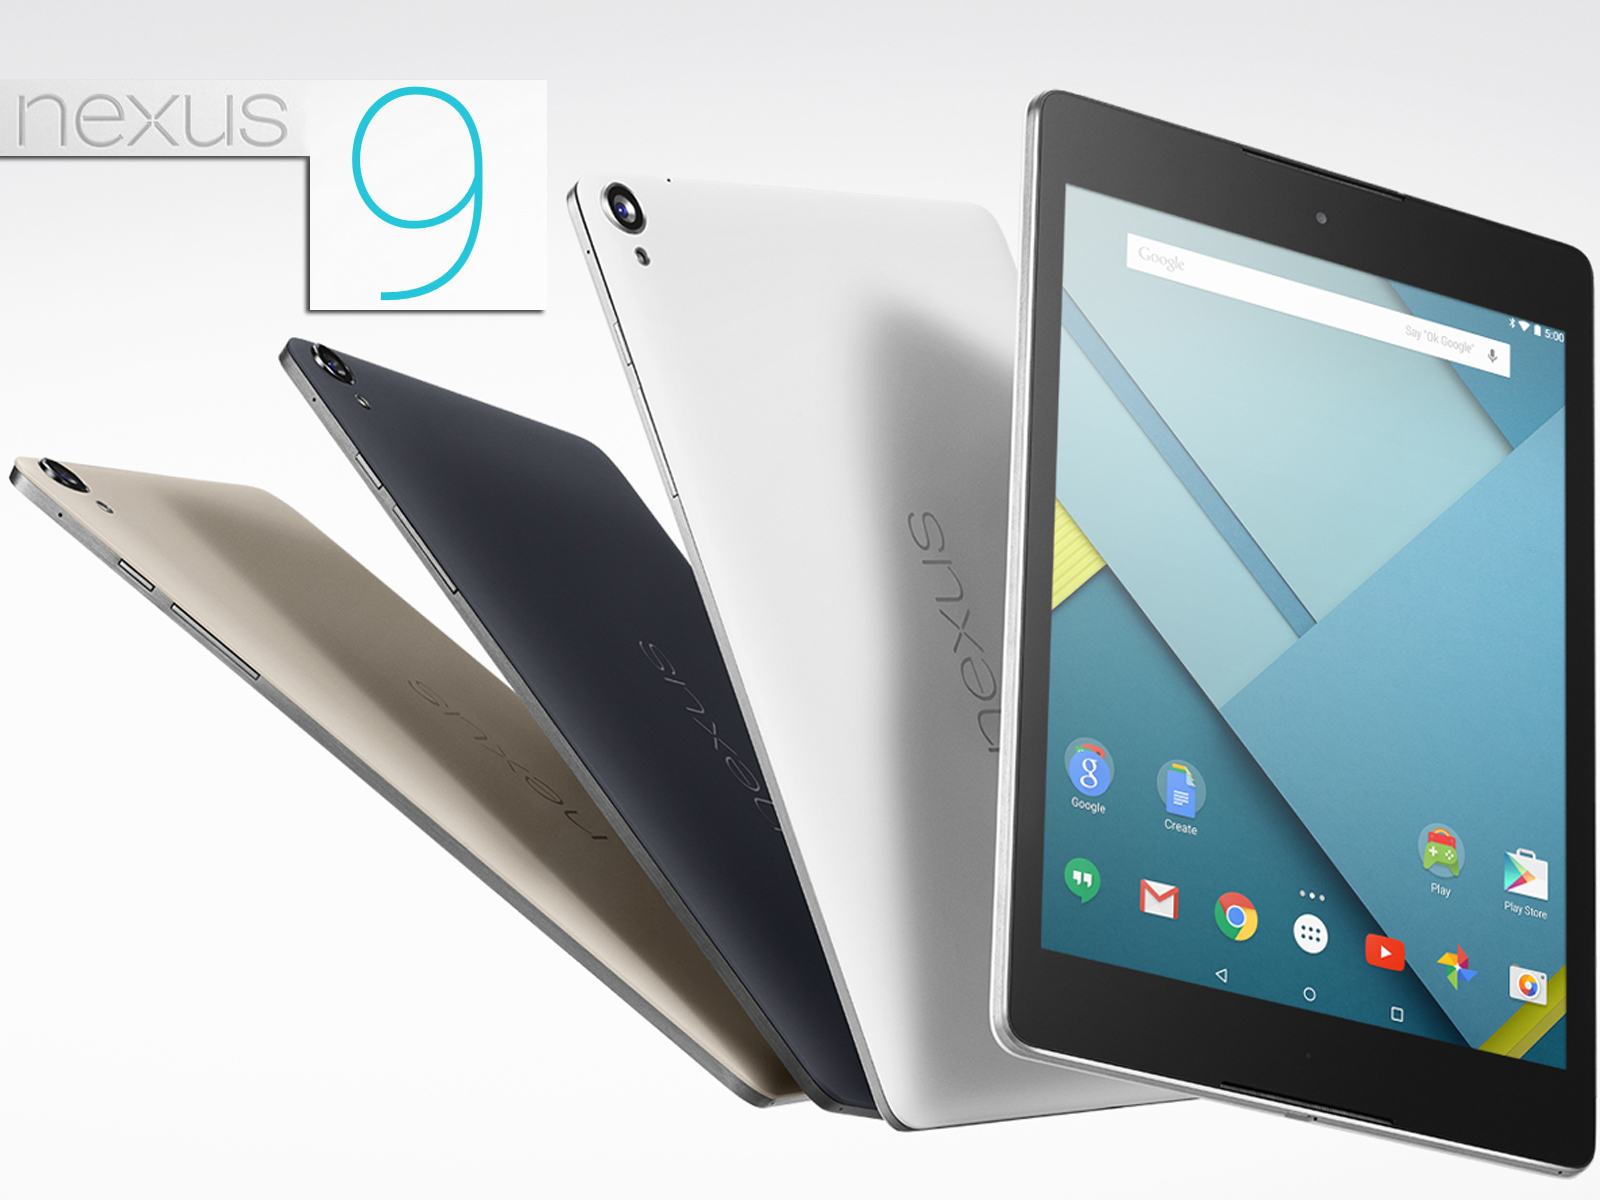 google nexus 9 8 9 zoll tablet mit tegra k1 und android 5. Black Bedroom Furniture Sets. Home Design Ideas